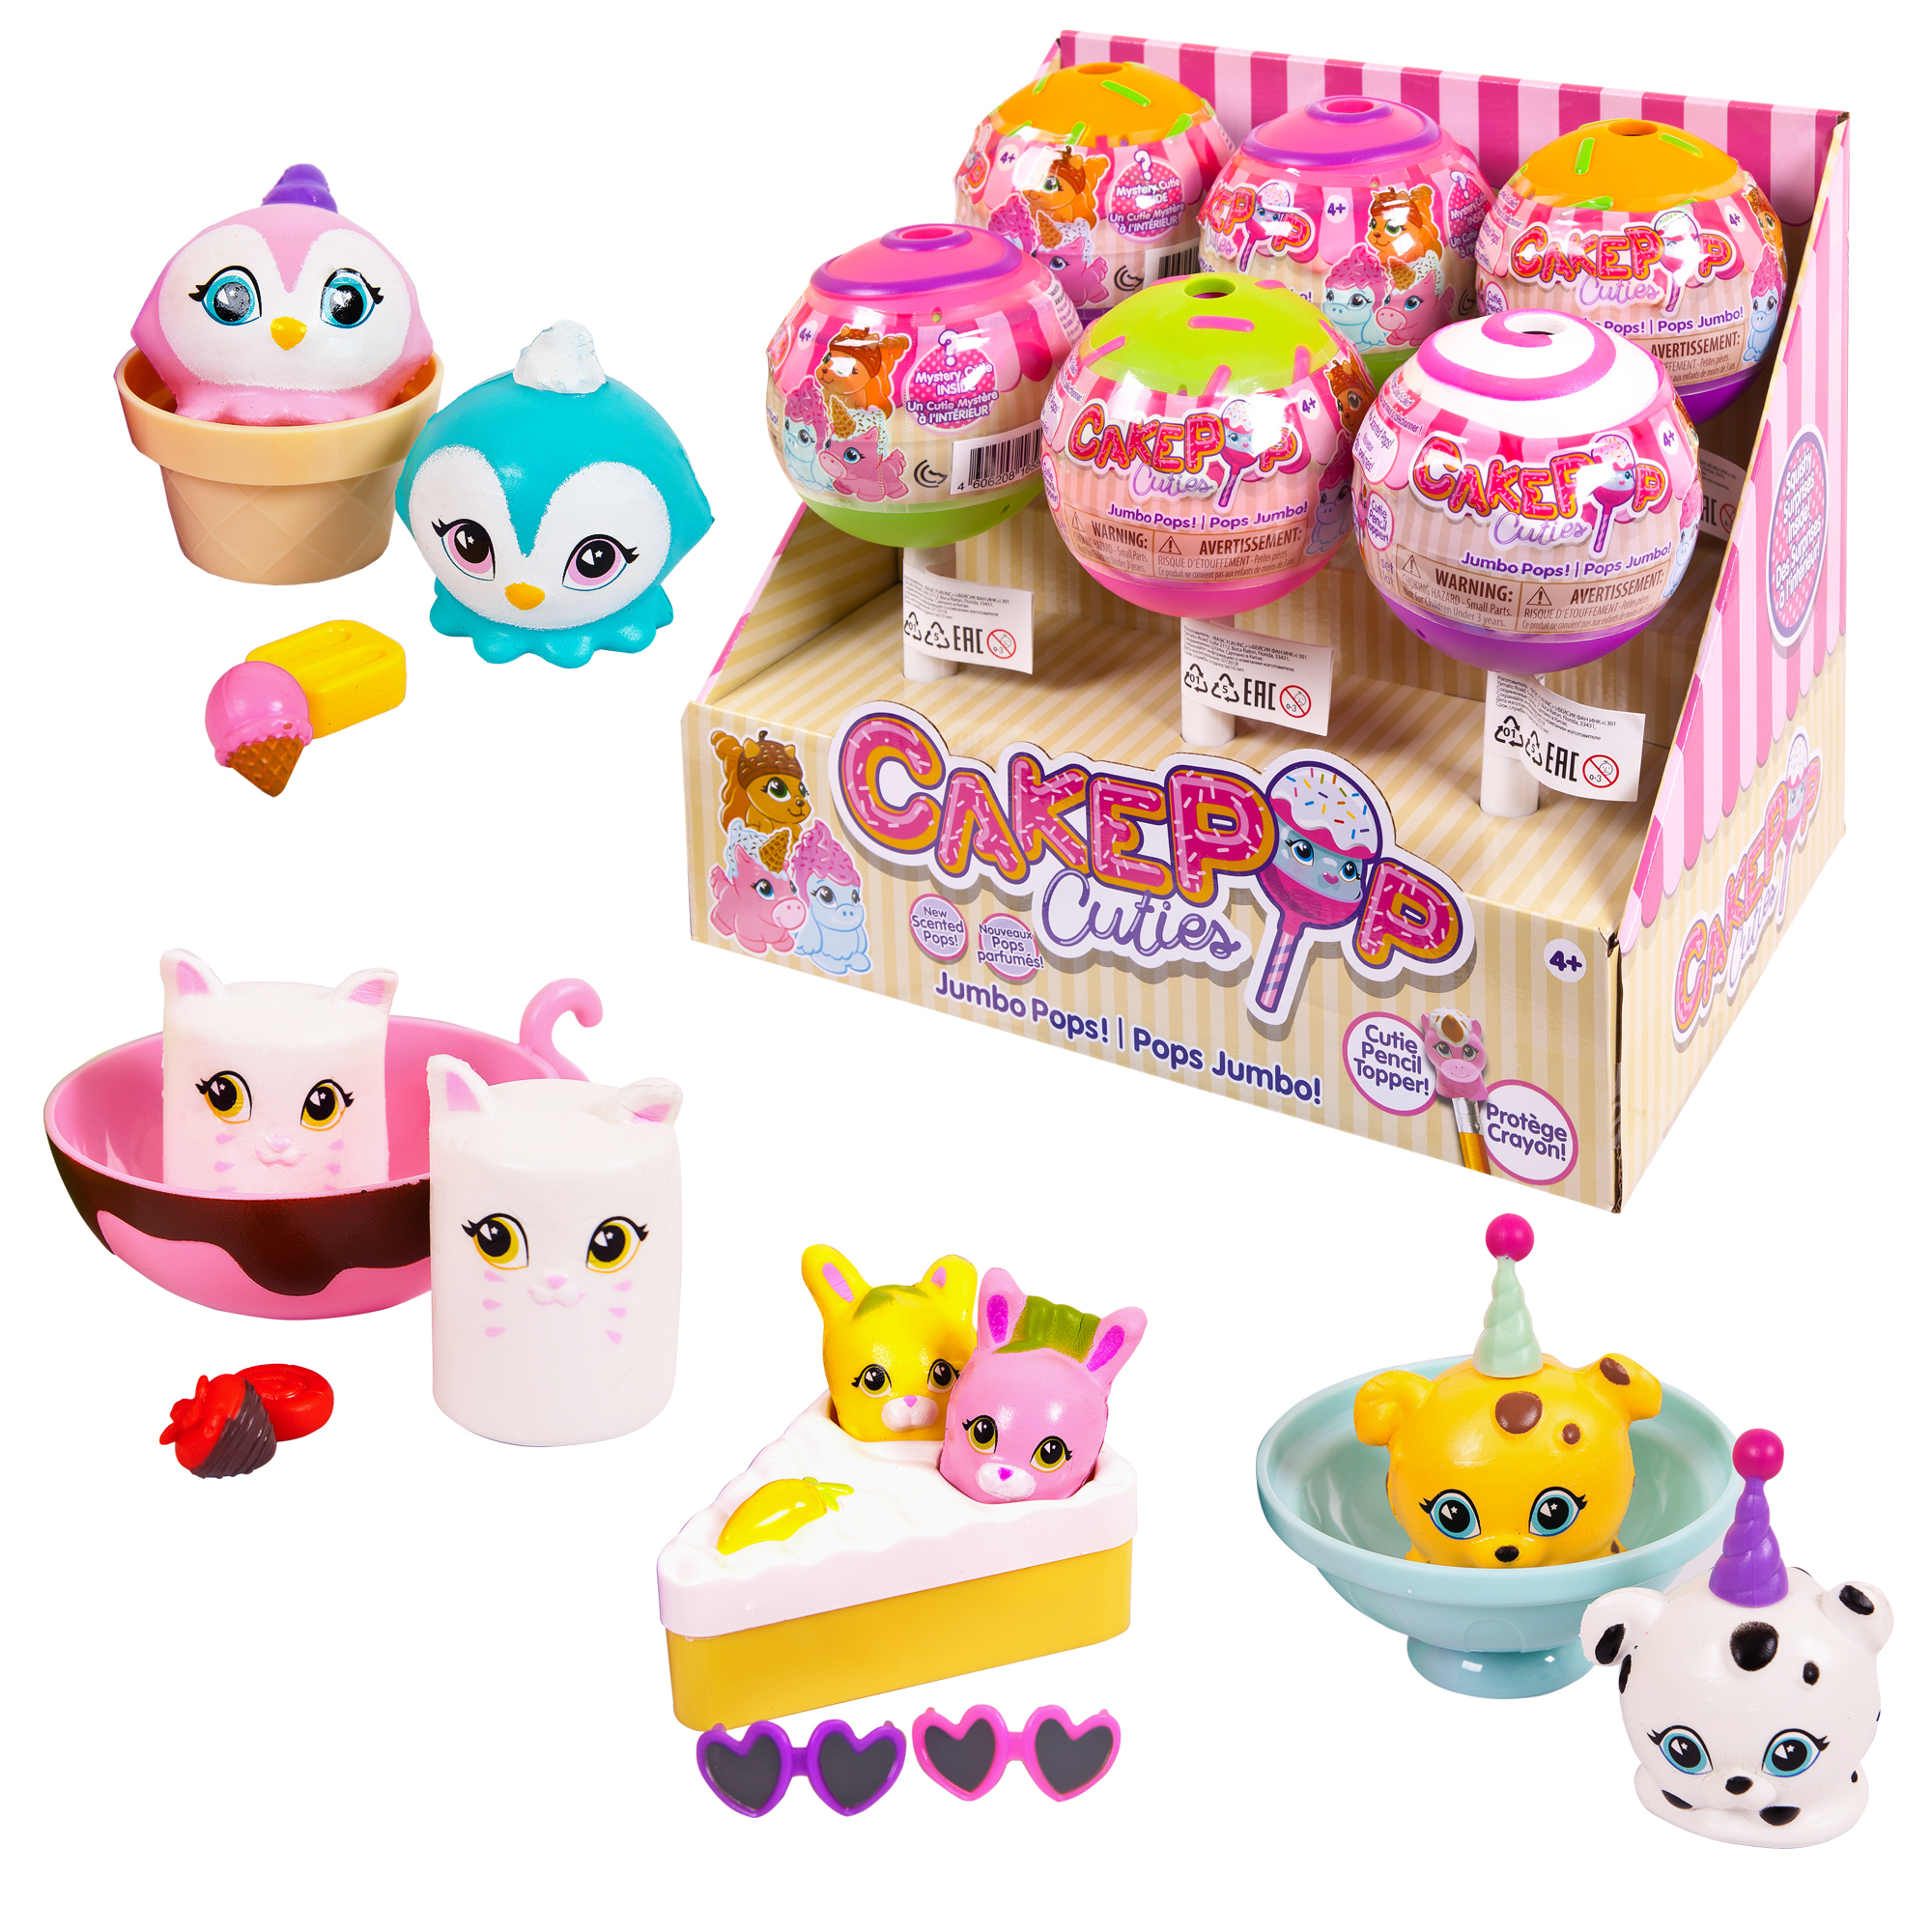 Фигурки животных Cake Pop Cuties «Jumbo Pop Single» бра reccagni angelo a 2701 2